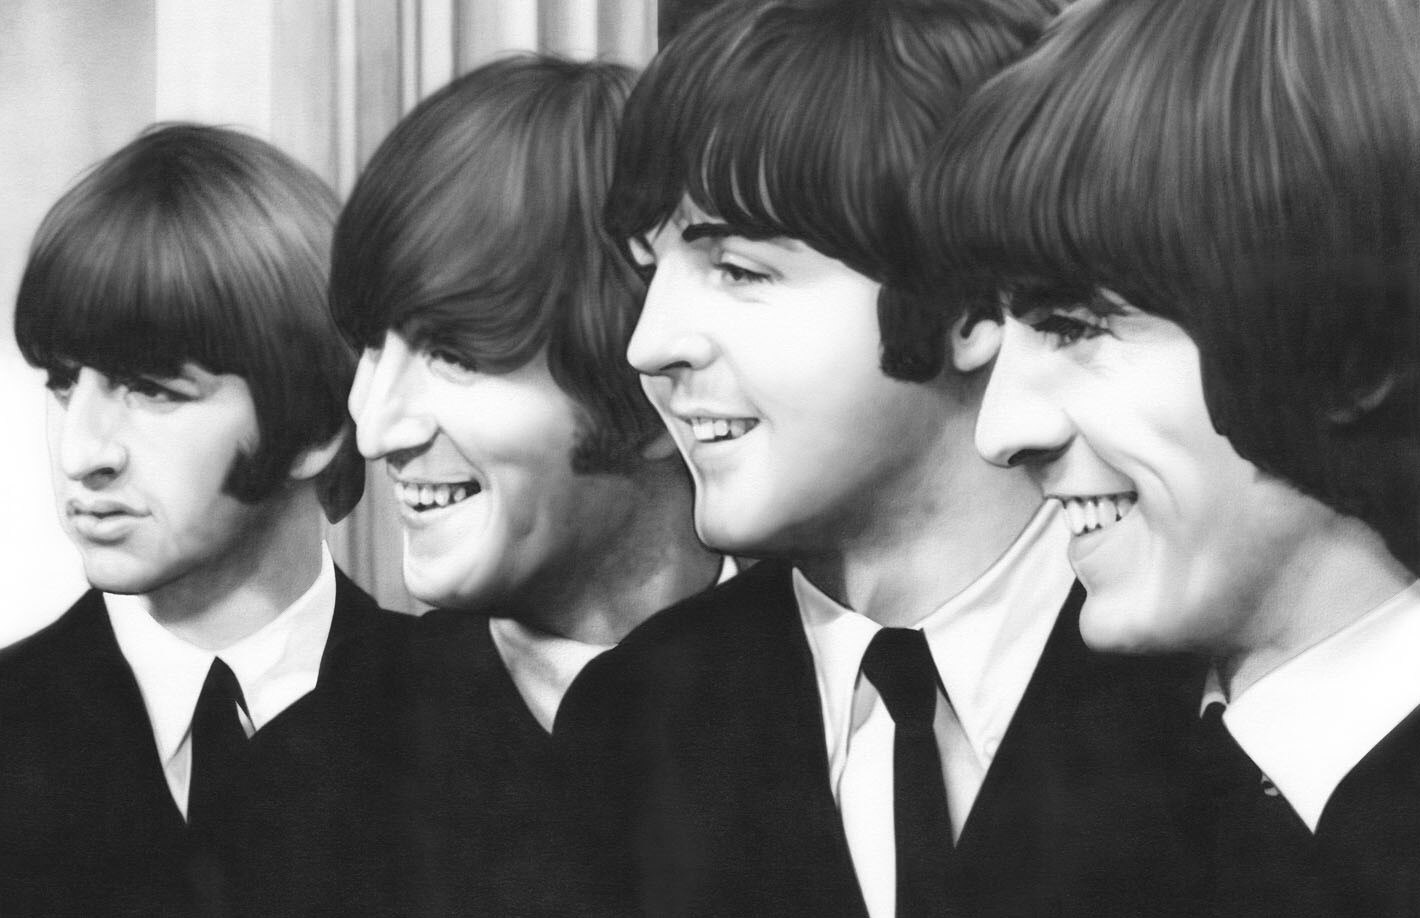 The-Beatles-George-Harrison-Ringo-Starr-Paul-McCartney-John-Lennon-Poster-Home-Decor-Wall-Sticker-4